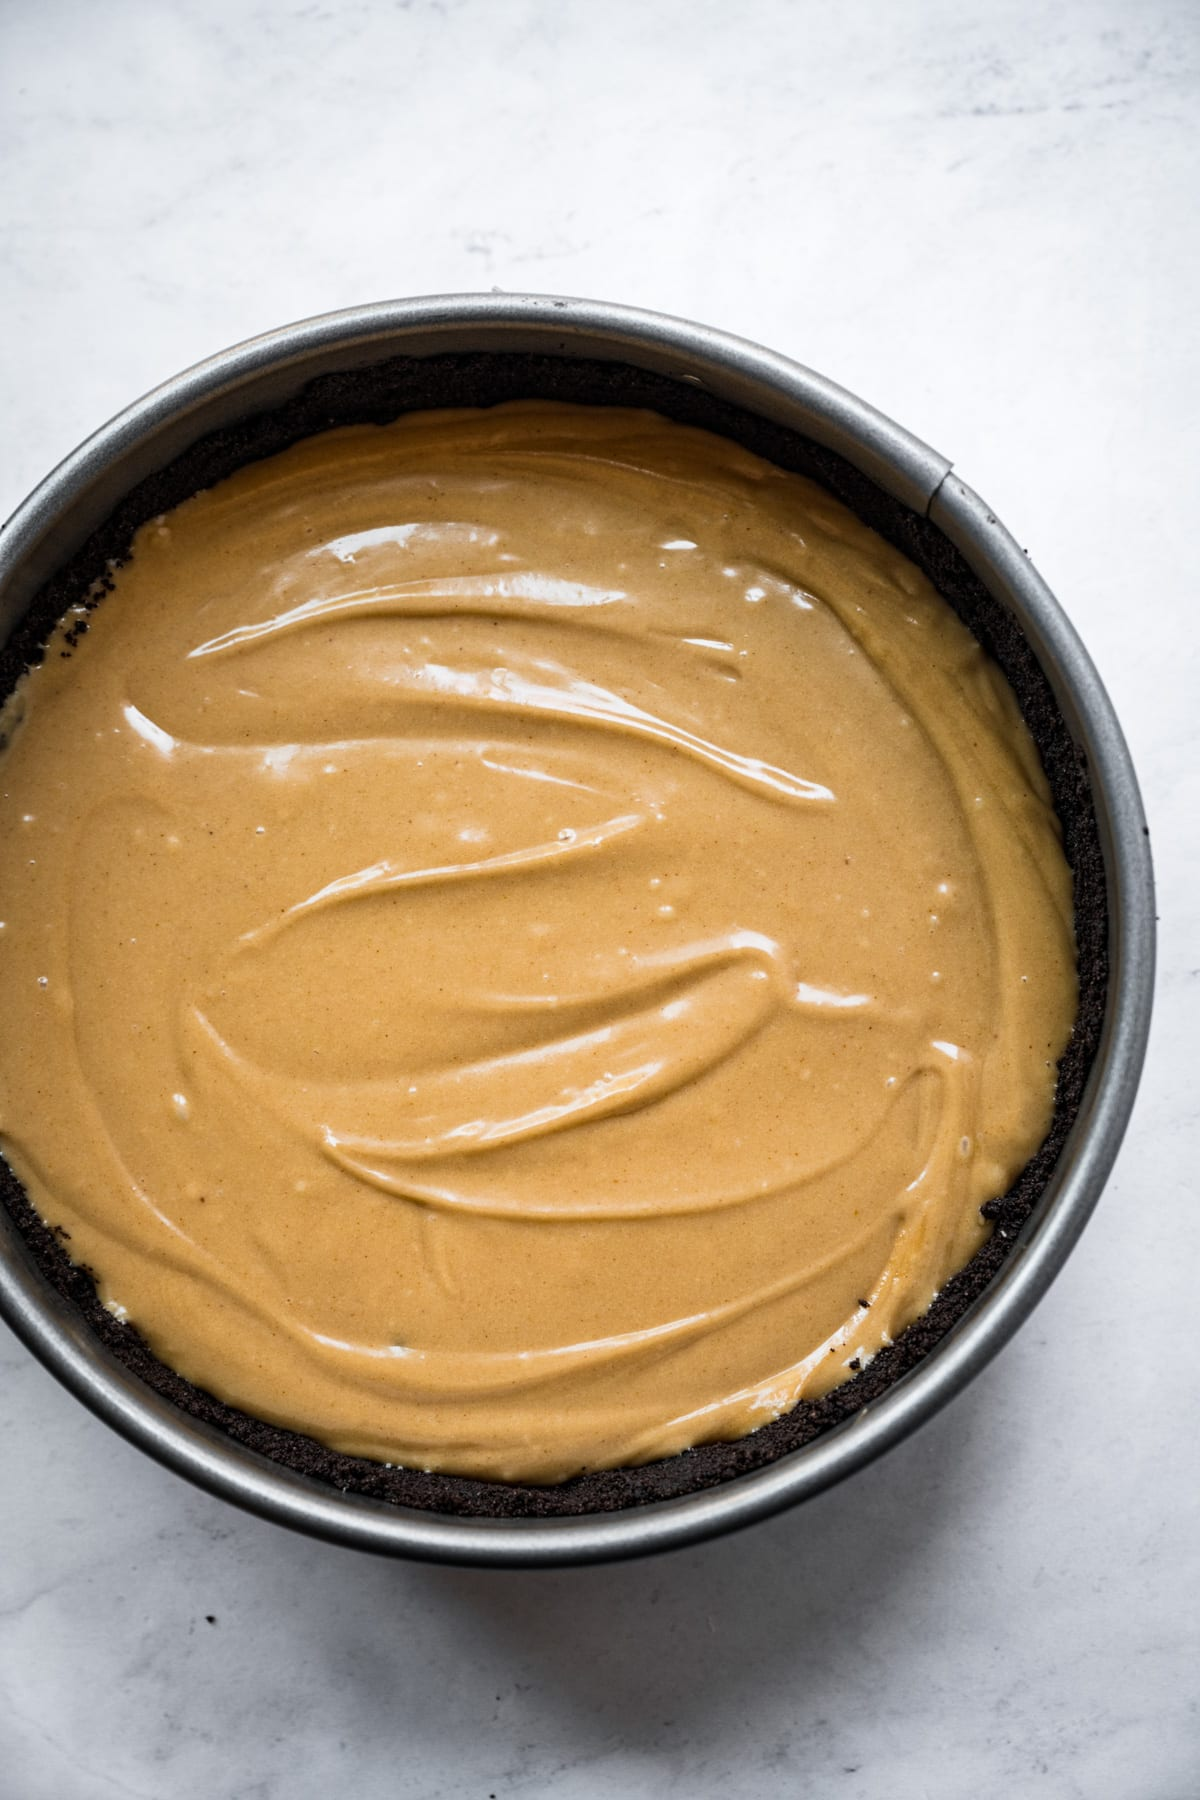 vegan peanut butter pie filling in chocolate cookie crust before chilling.